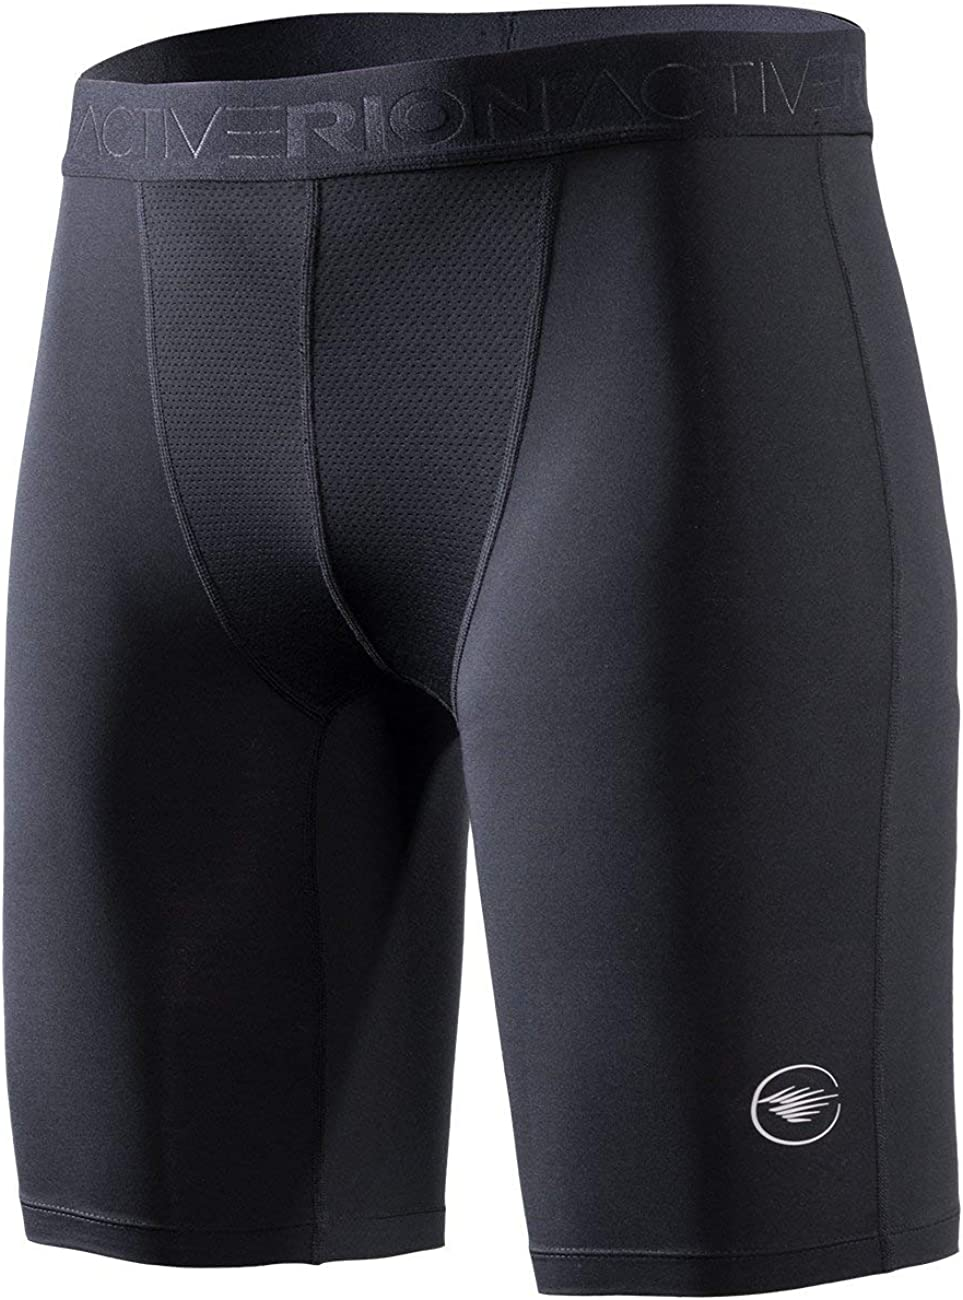 RION Active Men's Workout Compression Cool Dry Baselayer Shorts Tights